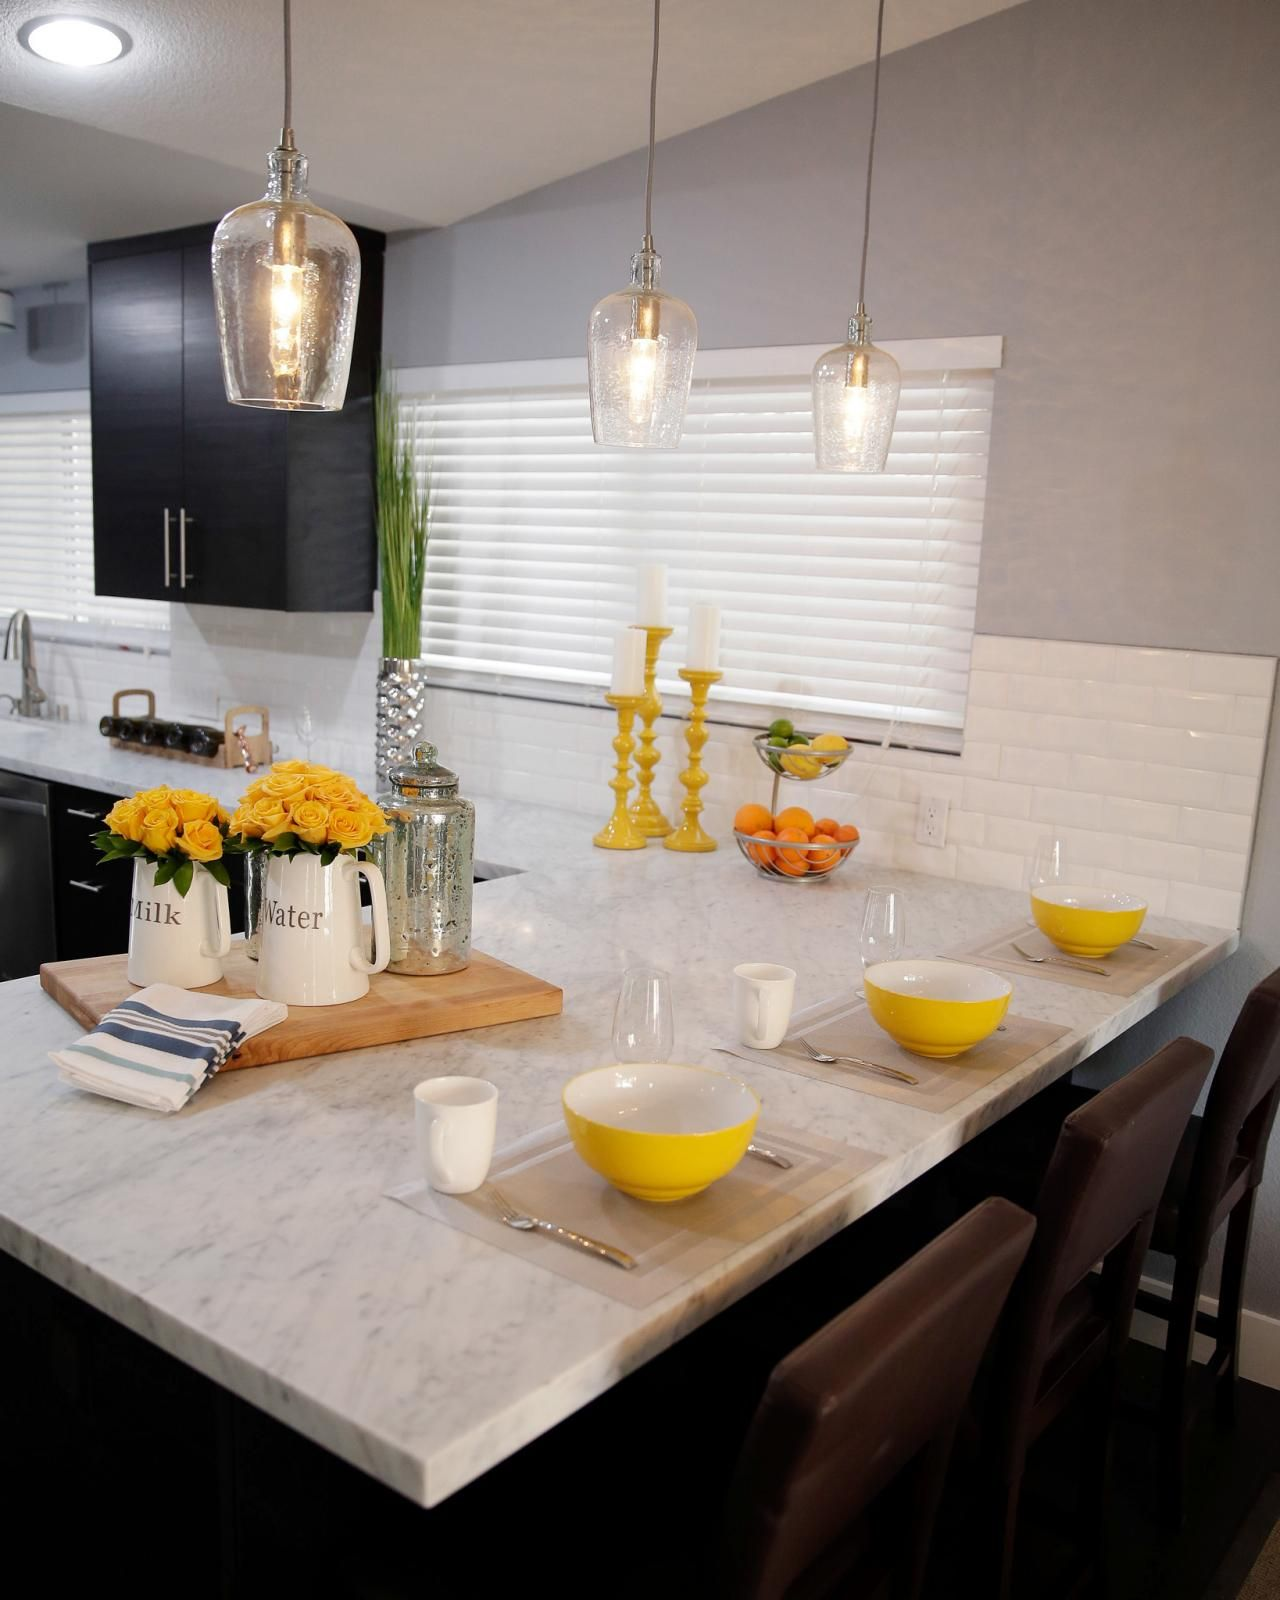 Premier Home Staging California Hgtv: Brother Vs. Brother: Kitchen Renovations From Drew And